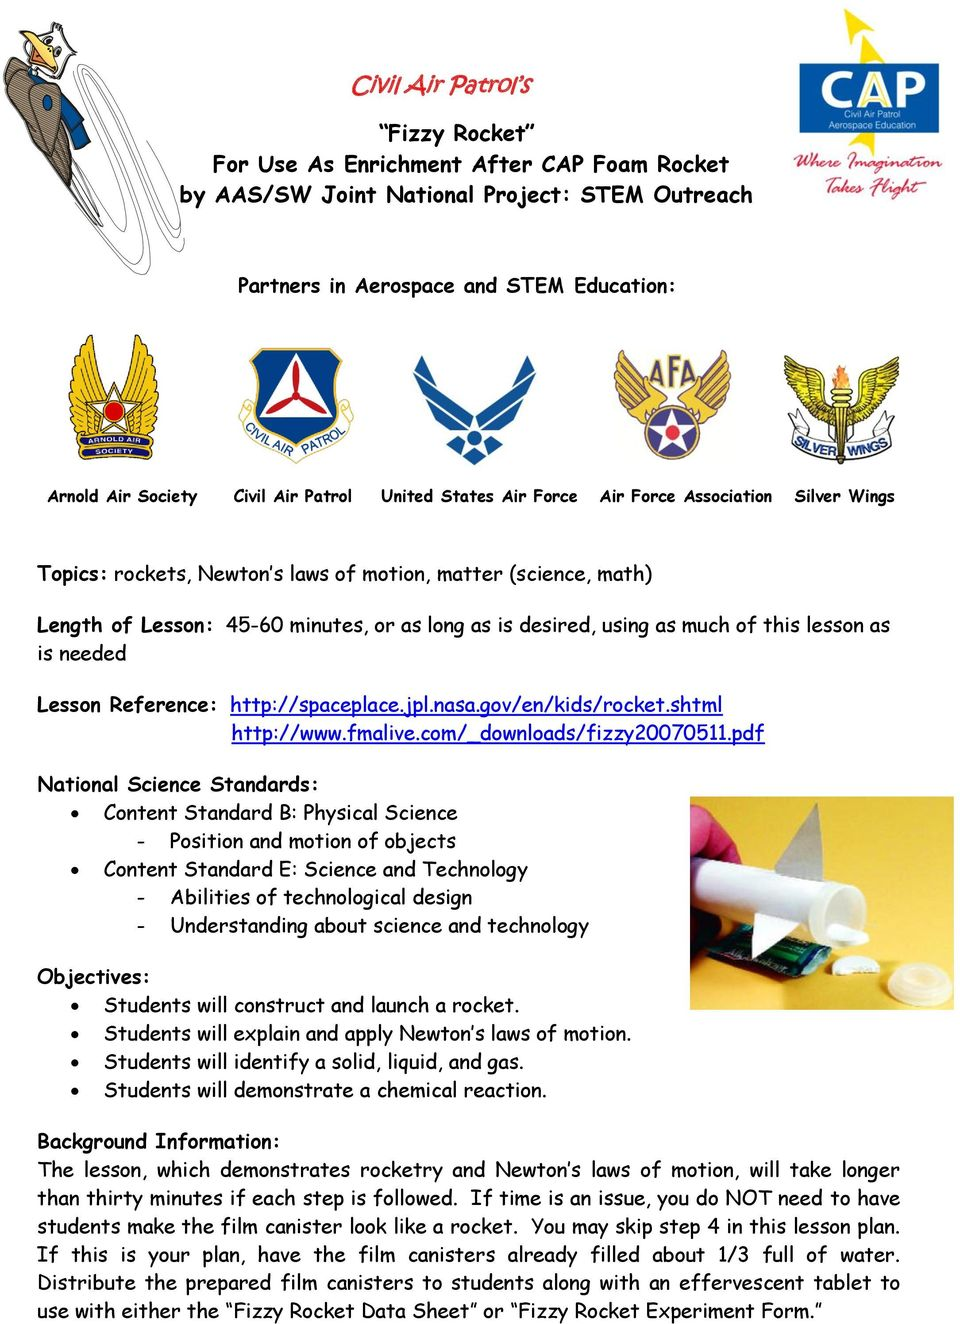 much of this lesson as is needed Lesson Reference: http://spaceplace.jpl.nasa.gov/en/kids/rocket.shtml http://www.fmalive.com/_downloads/fizzy20070511.